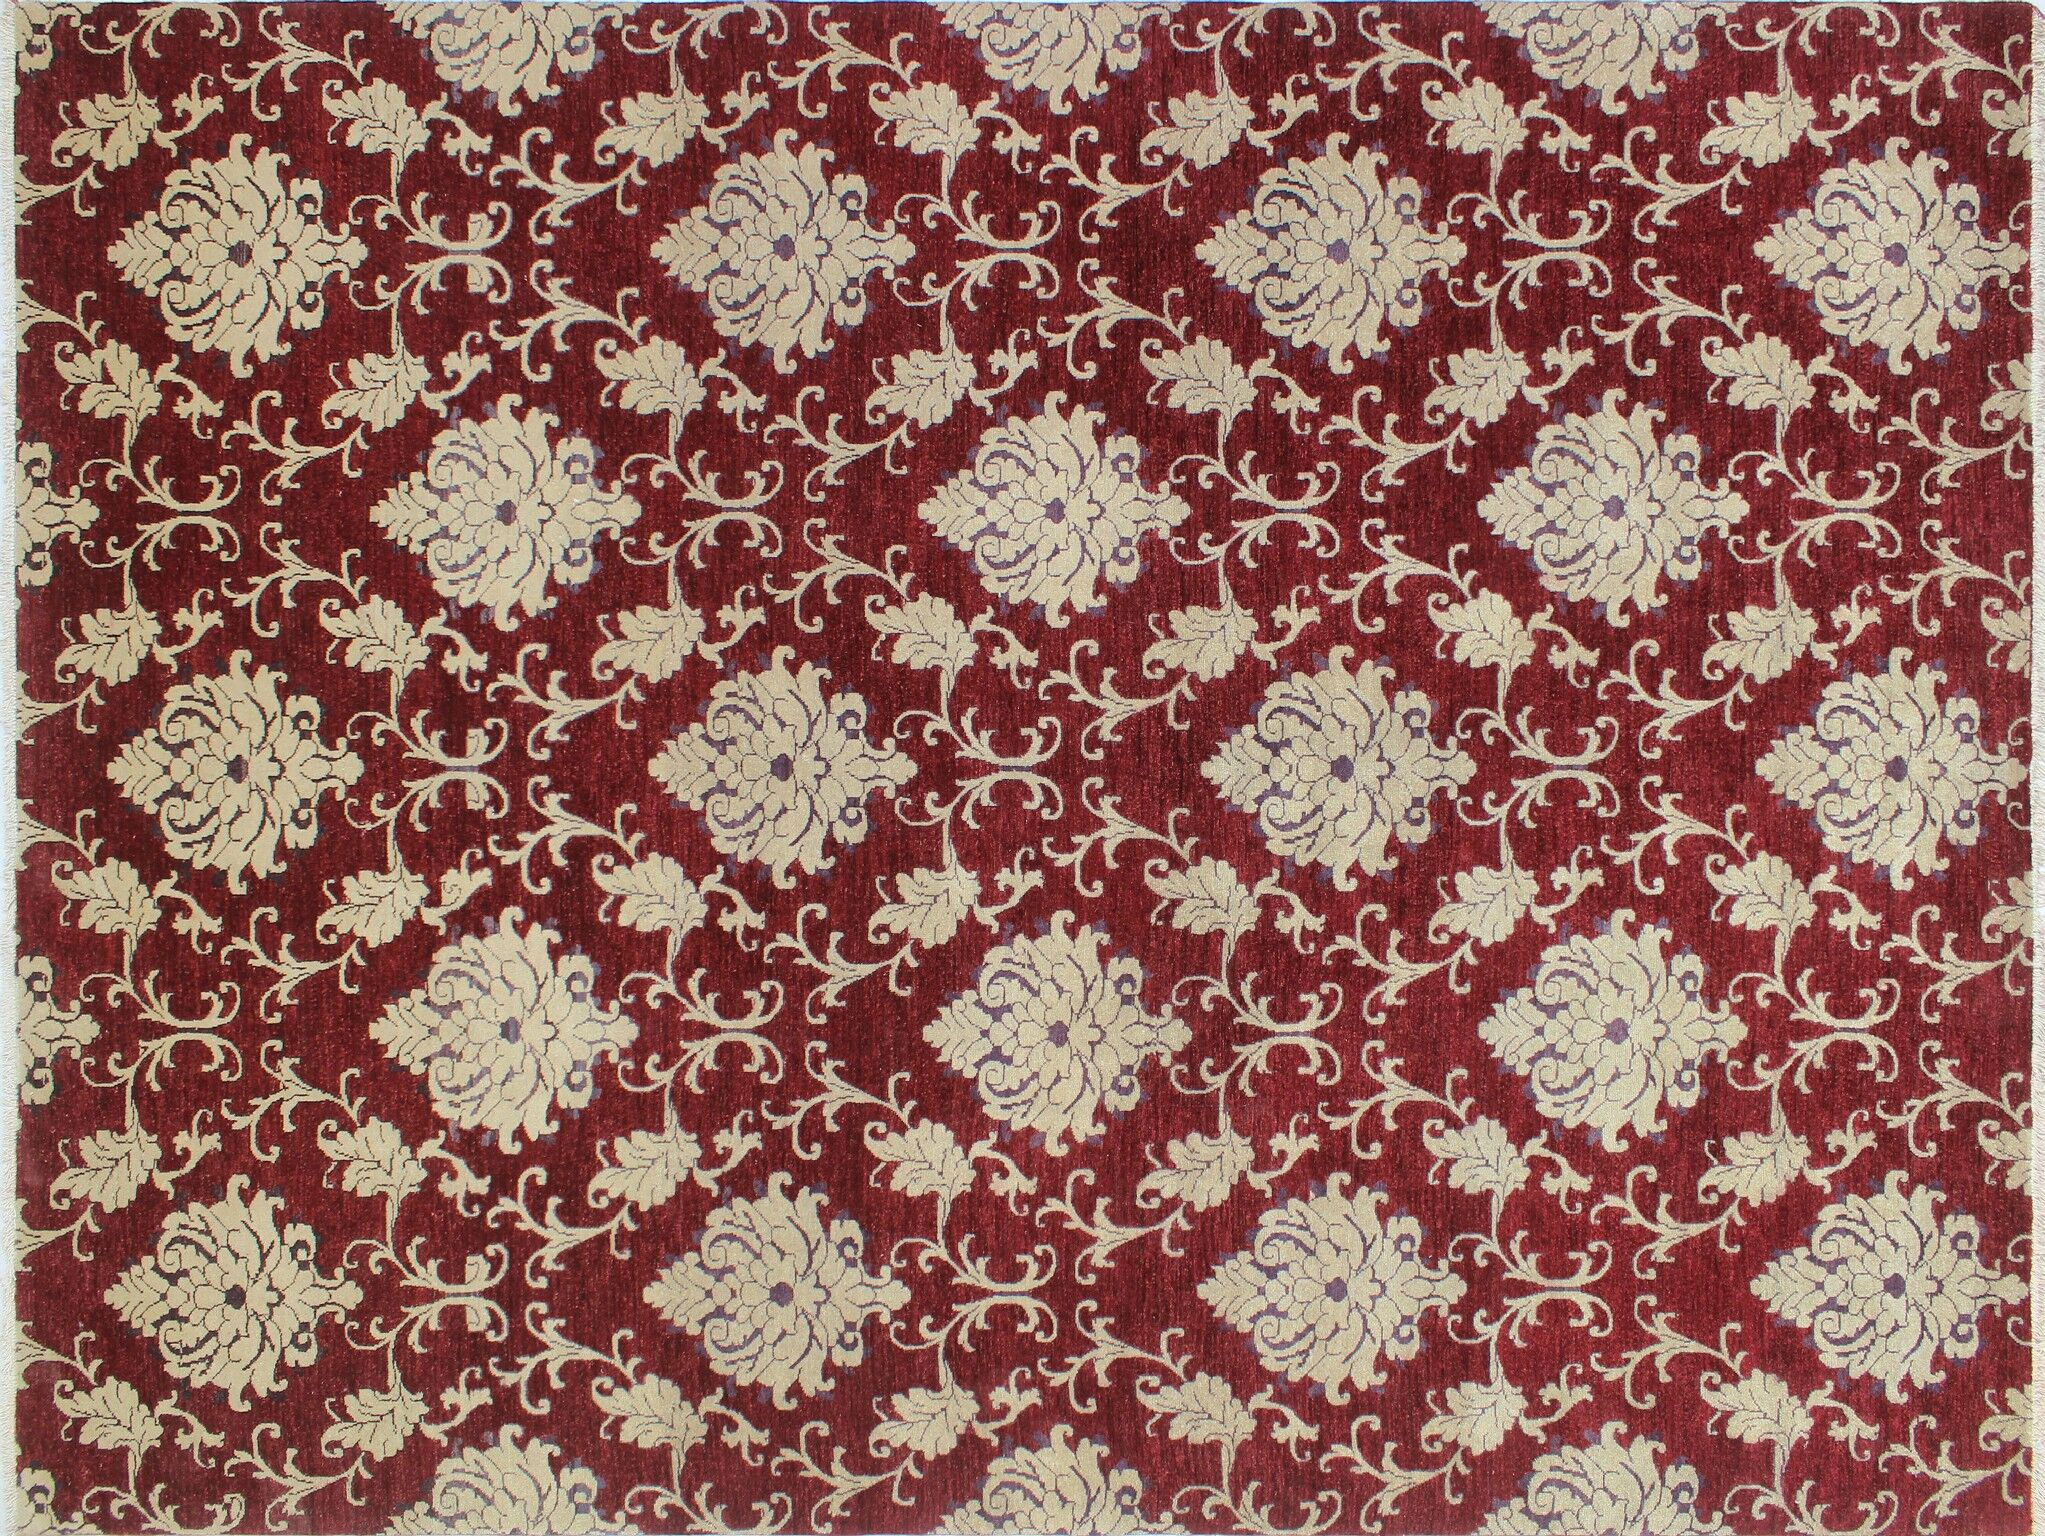 One-of-a-Kind MontagueHand-Knotted Red Area/Beige Rug